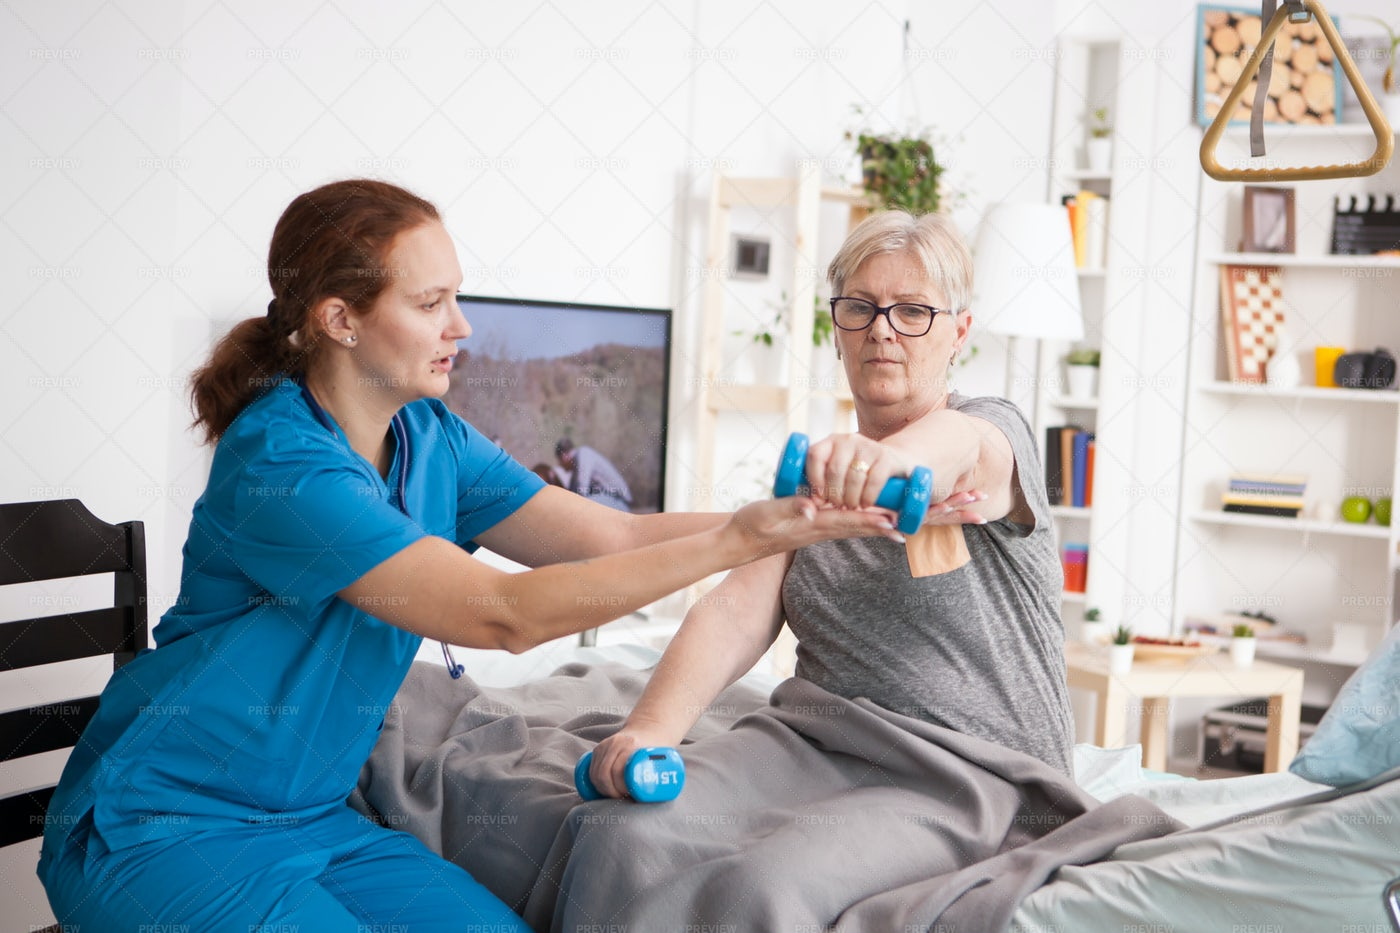 Caregiver Helping Patient Exercise: Stock Photos